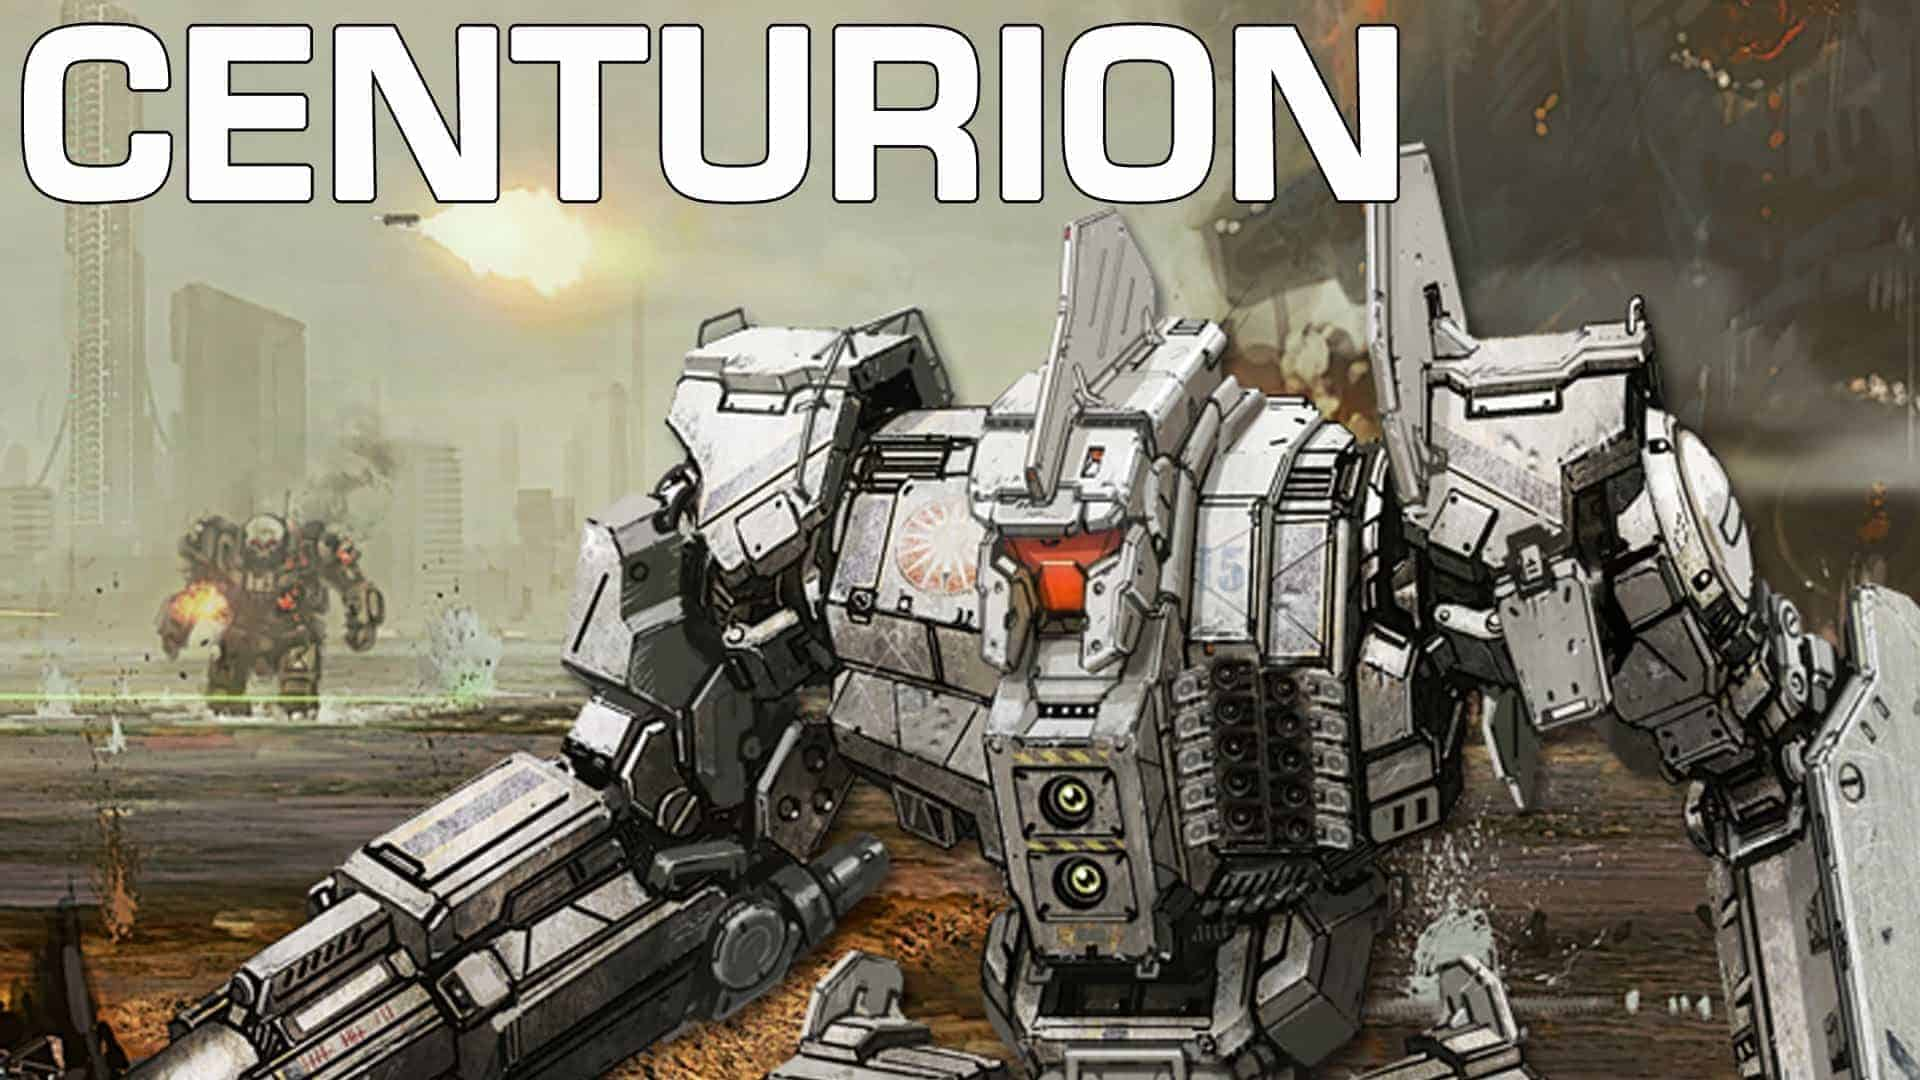 MechWarrior Online : Centurion Mech Revealed in New Video